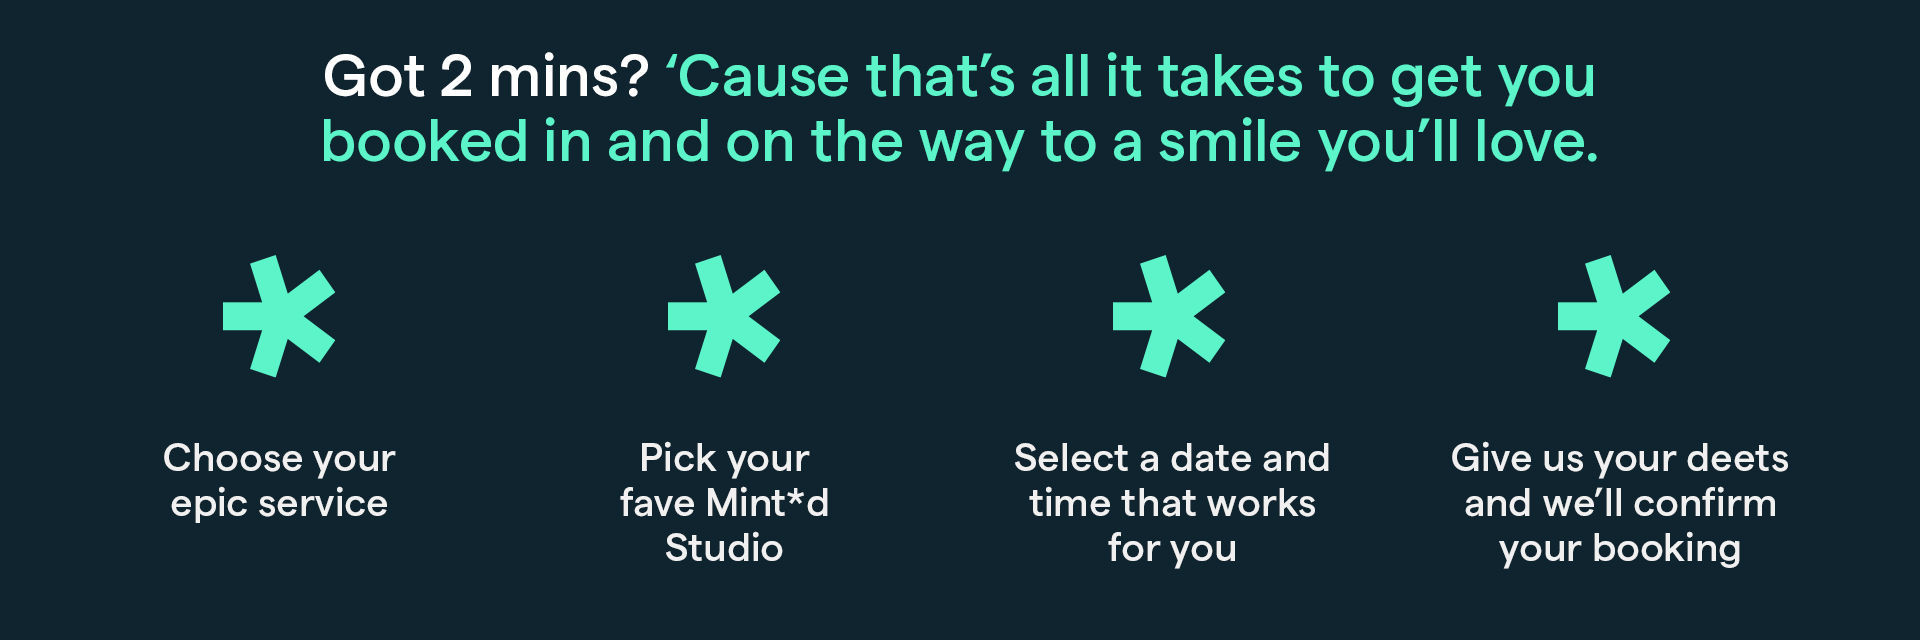 Got 2 minutes? Because that's all it takes to get you booked in and on the way to a smile you'll love.